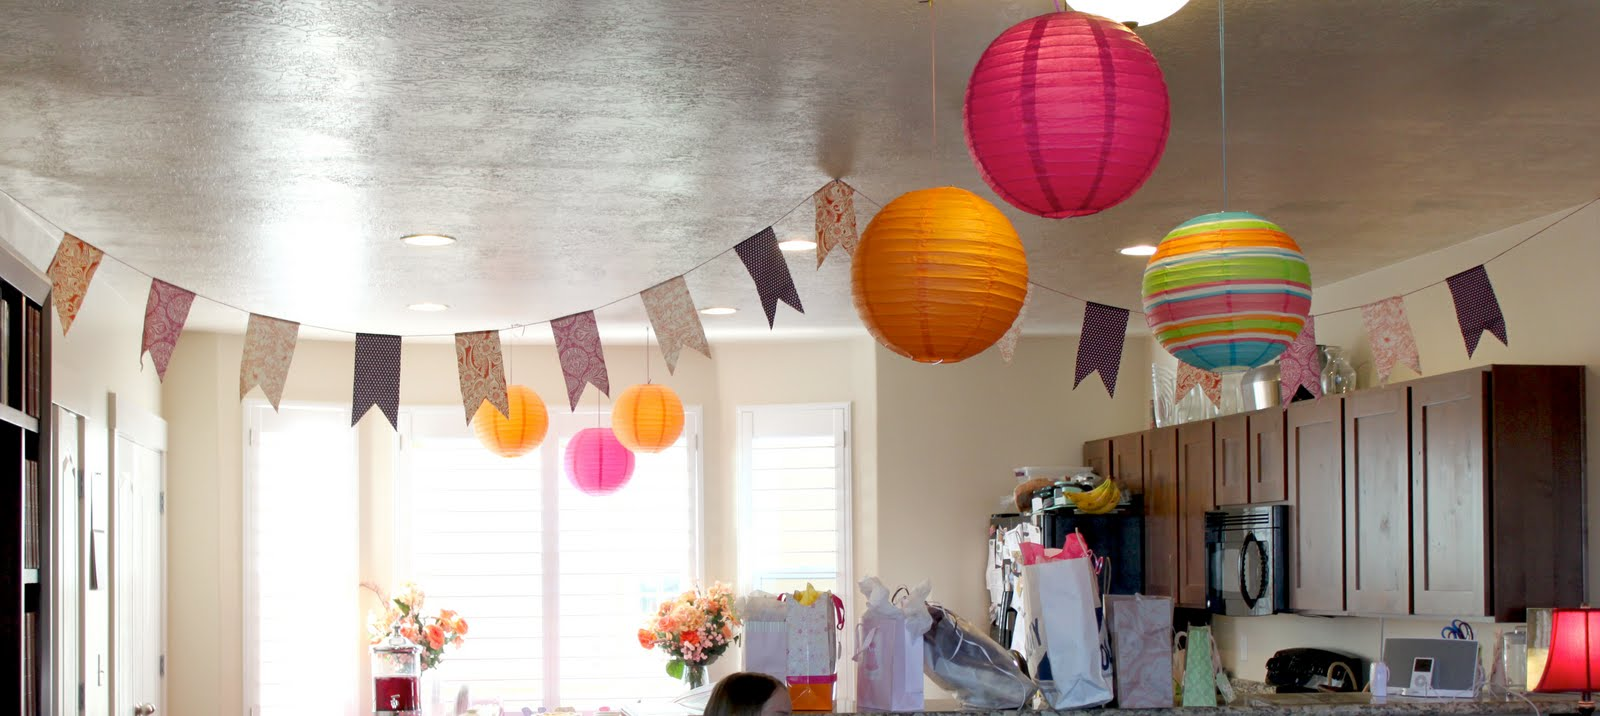 Baby Shower Ideas For Boys Decorations On A Budget - Tons of ideas for a fun cheap or free baby shower or party